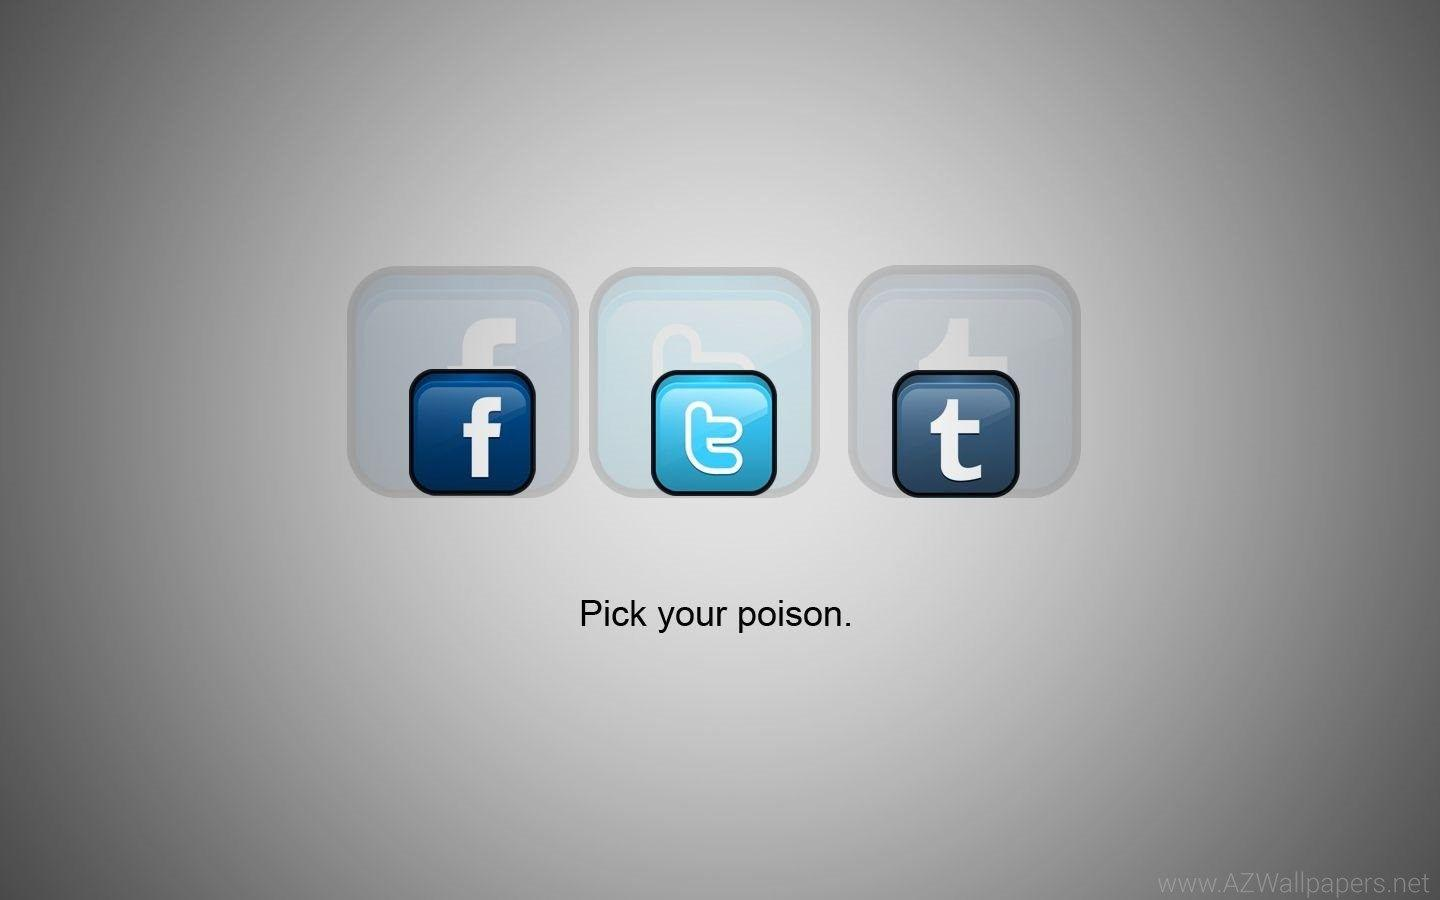 Social Media Pick Your Poison Free Widescreen HD Wallpapers.jpeg